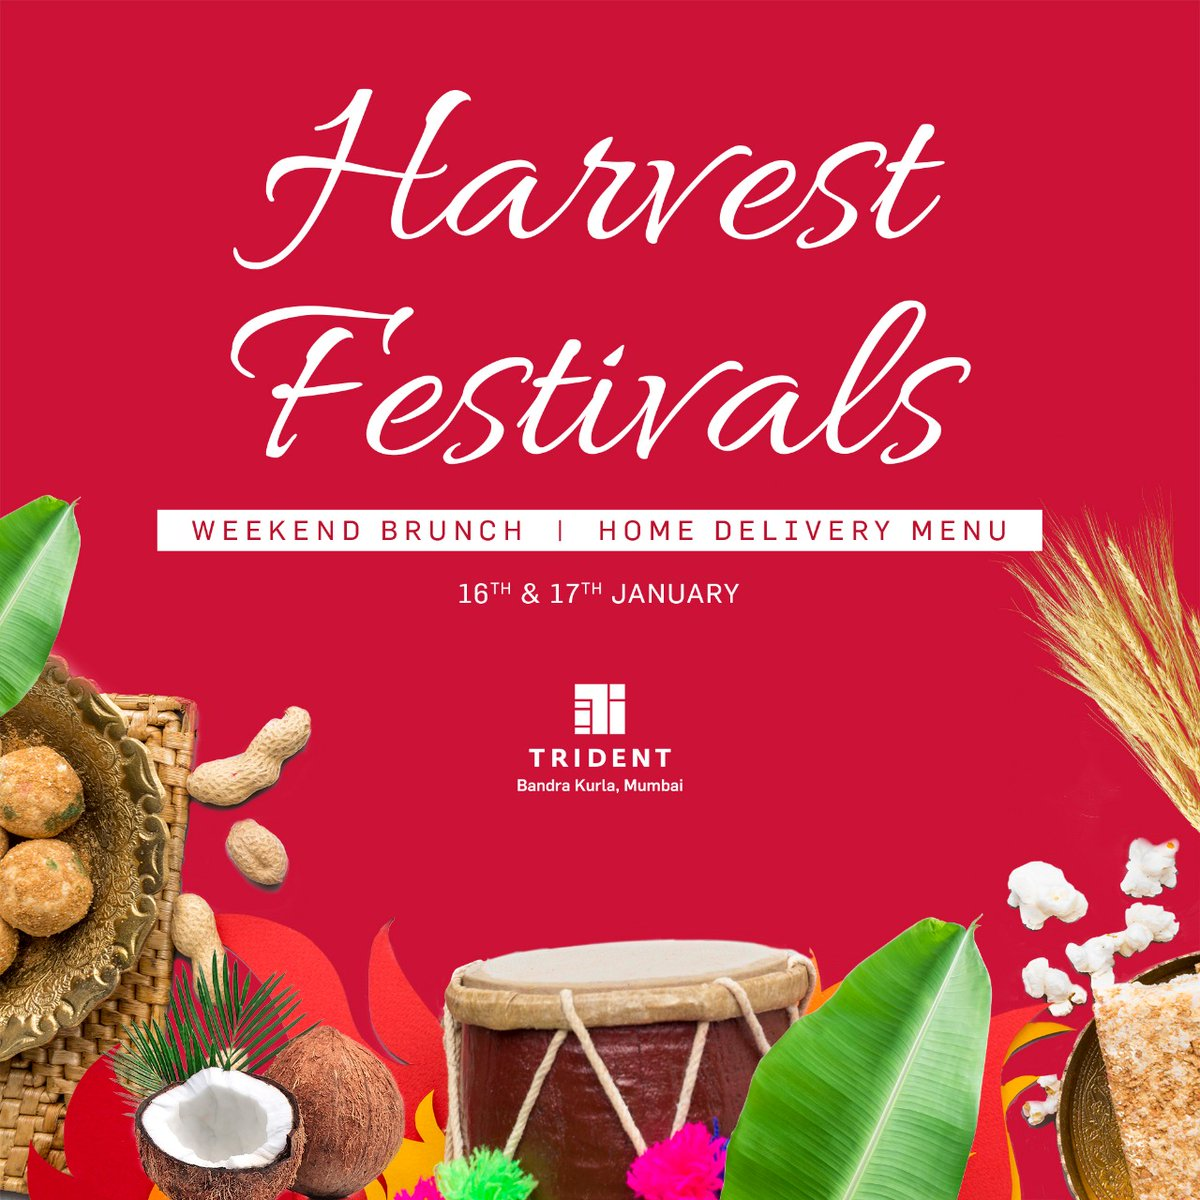 Celebrate the spirit of India's harvest festivals with a bountiful blend of Lohri and Pongal delights this weekend. To  view our home delivery menu click https://t.co/RR3kqJ1dtz  to order, please call: +91 6672 7626 #TridentBKC #HarvestFestivals #WeekendBrunch https://t.co/7zKQT9z06i